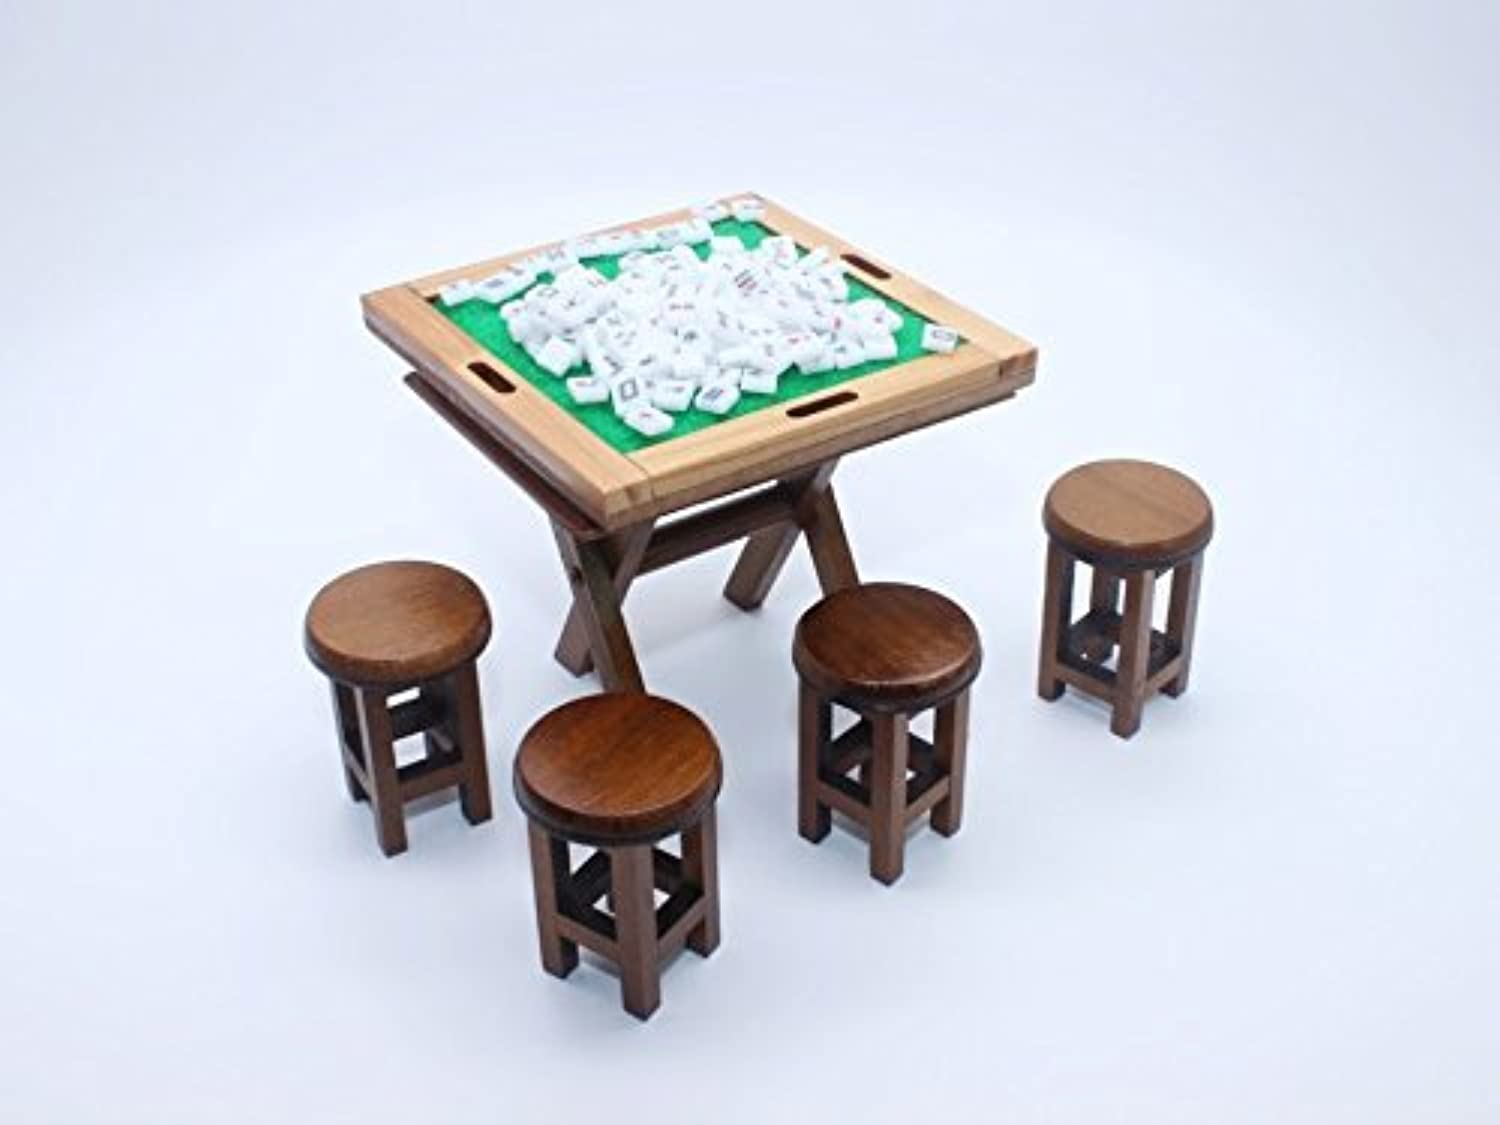 Vintage Mahjong Set Dollhouse Miniature Full set